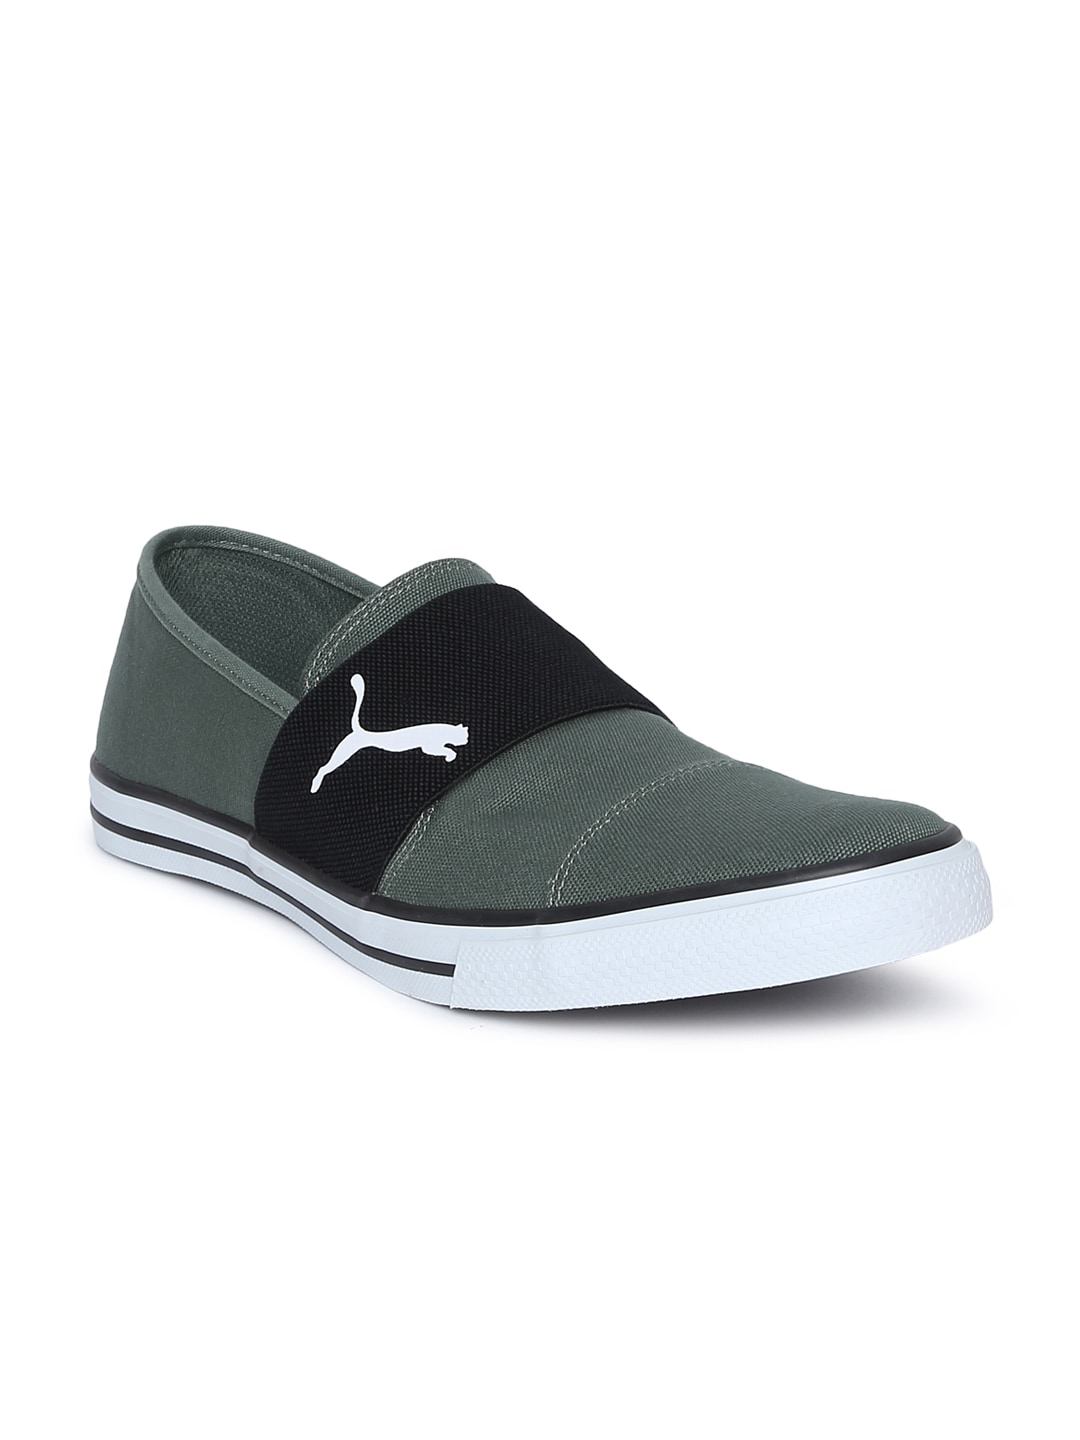 Puma Shoes - Buy Puma Shoes for Men   Women Online in India e1d5e04c3